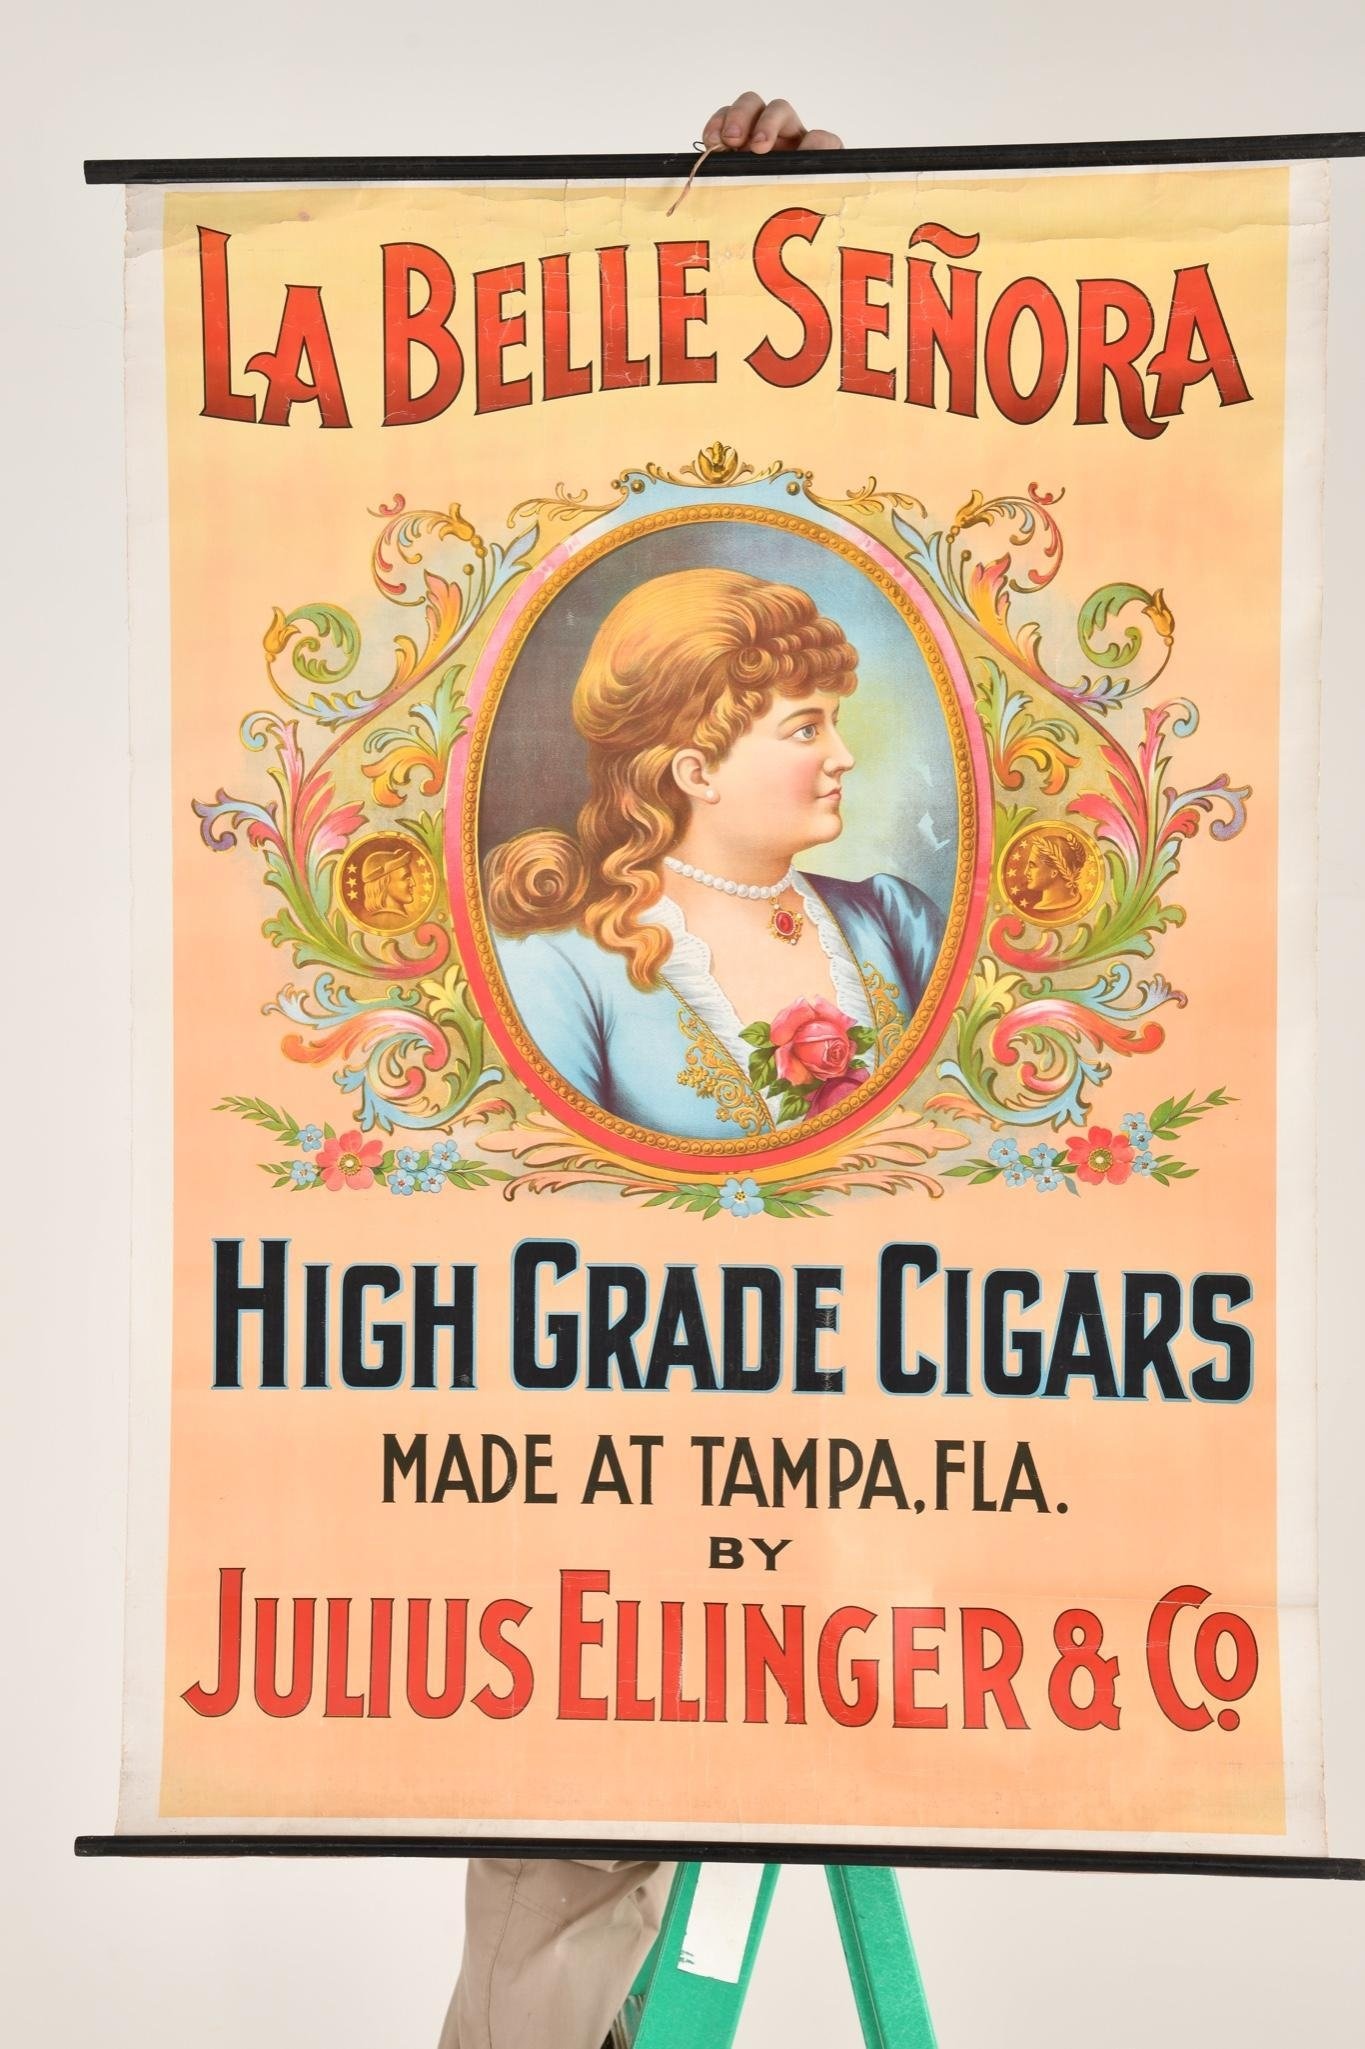 LA BELLE SENORA CIGARS ADVERTISING POSTER